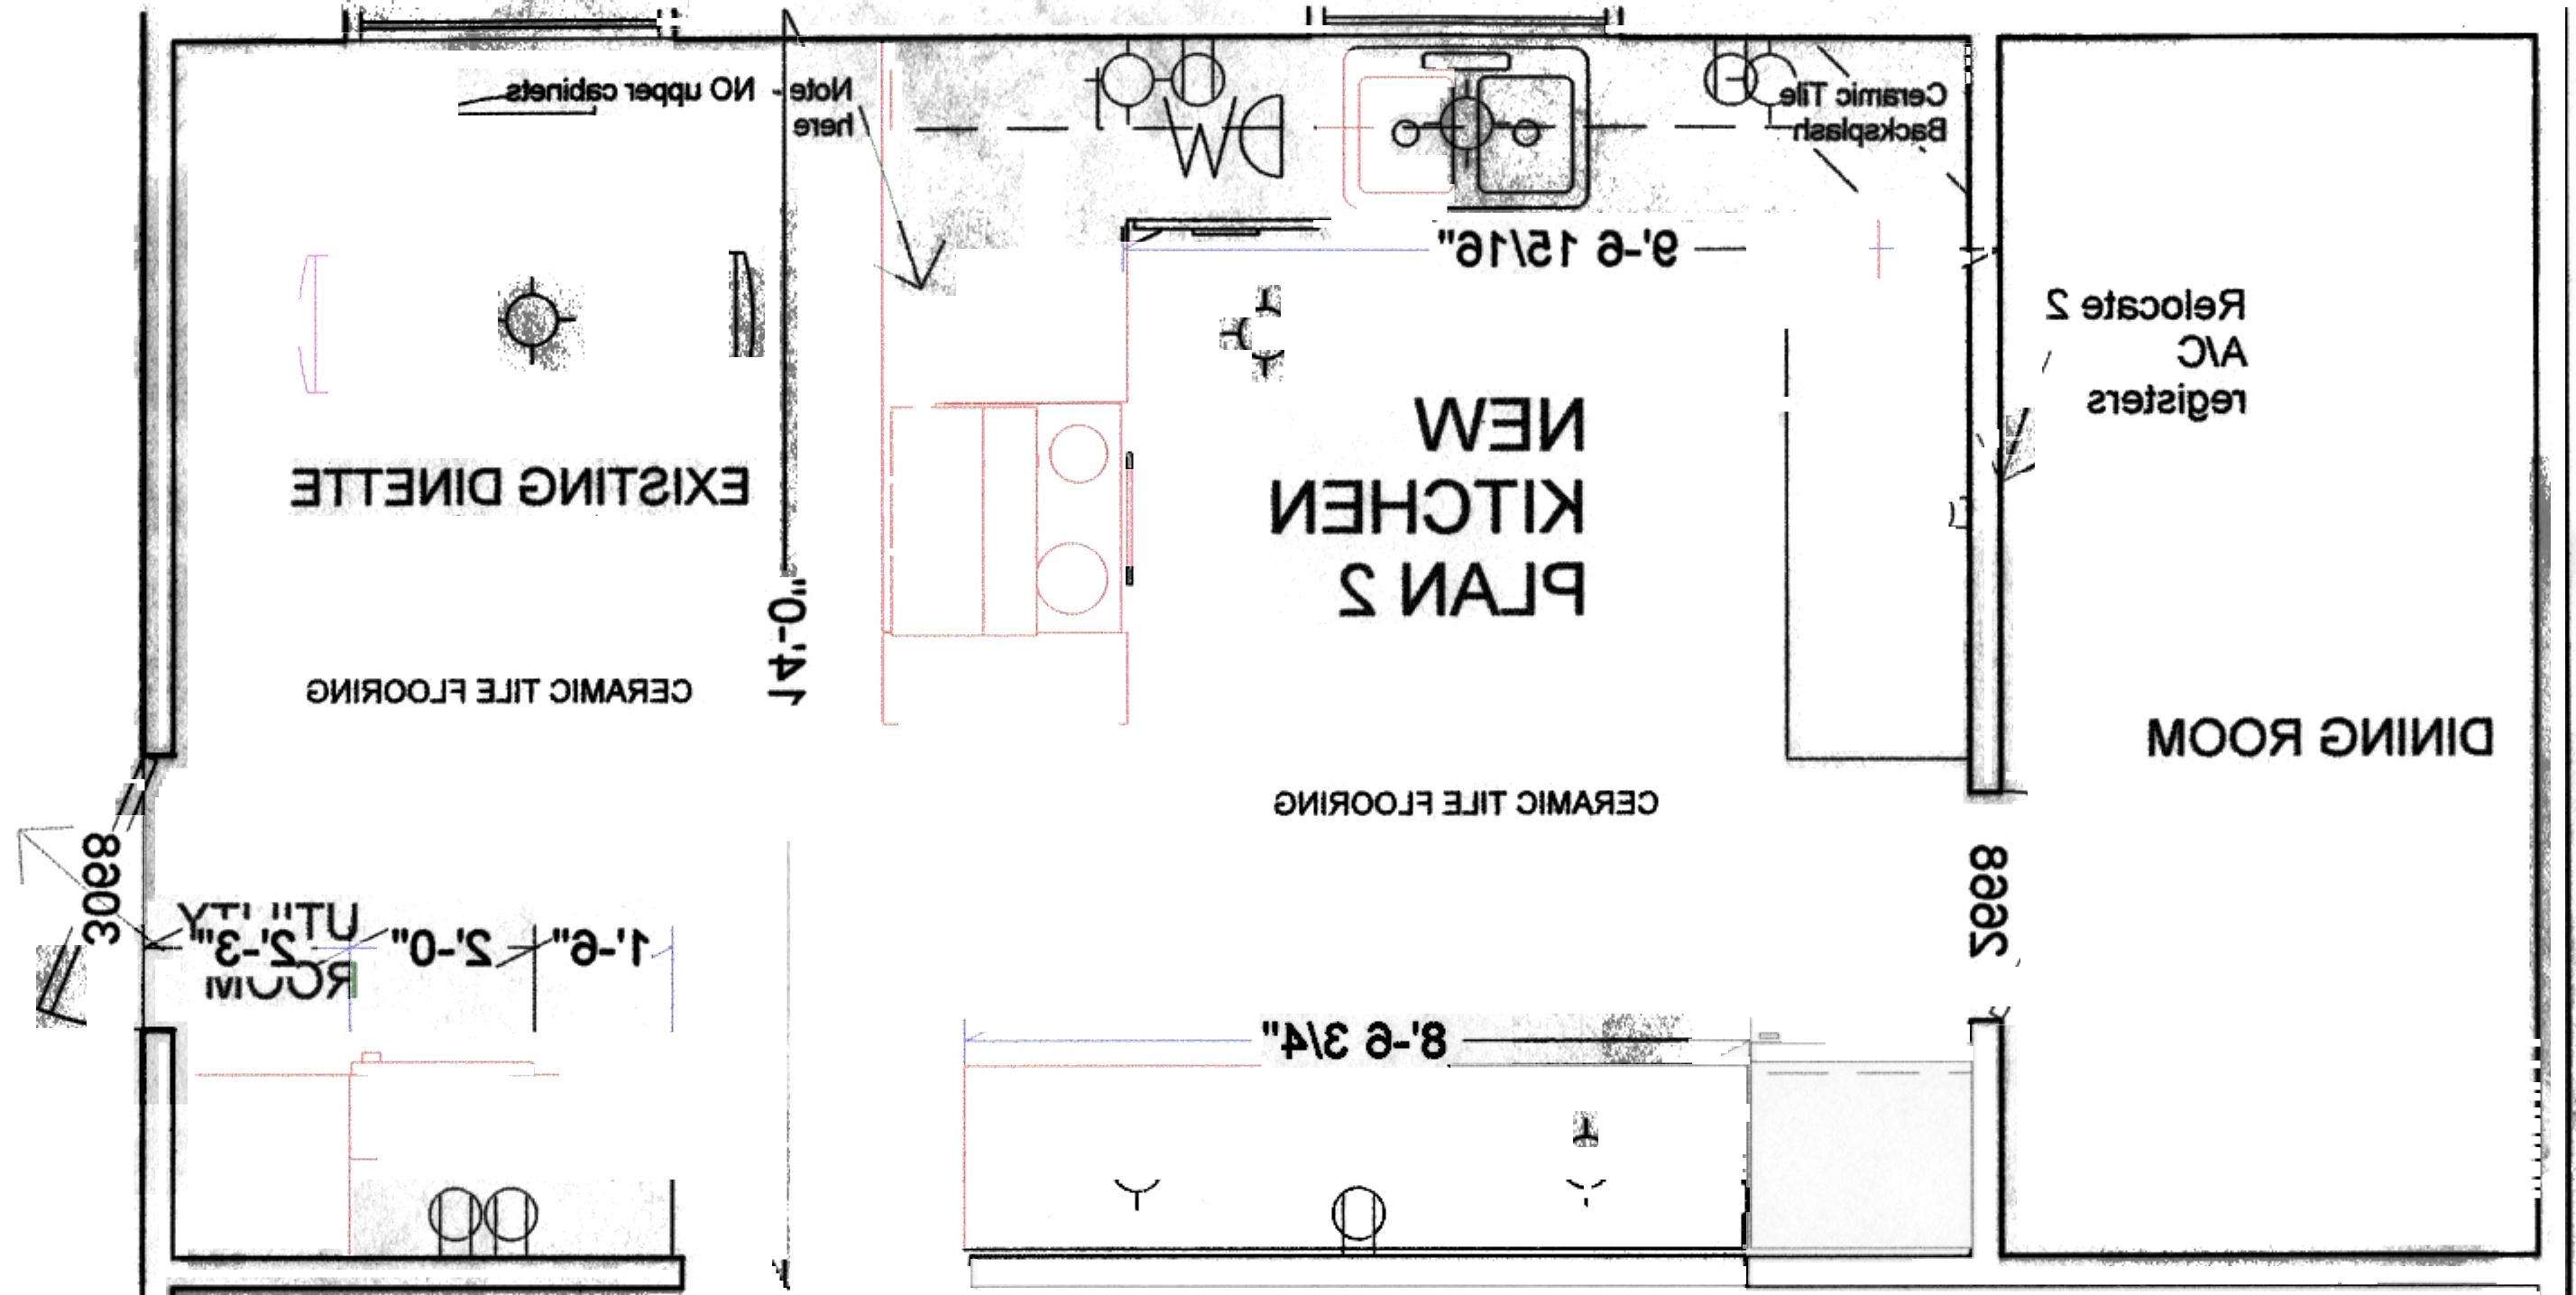 Kitchen Architecture Design Ideas Plan Archicad Autocad Contemporary Drawing Landscape Inspiration Commercial Kitchen Design How To Design Kitchen Layout (Image 20 of 38)